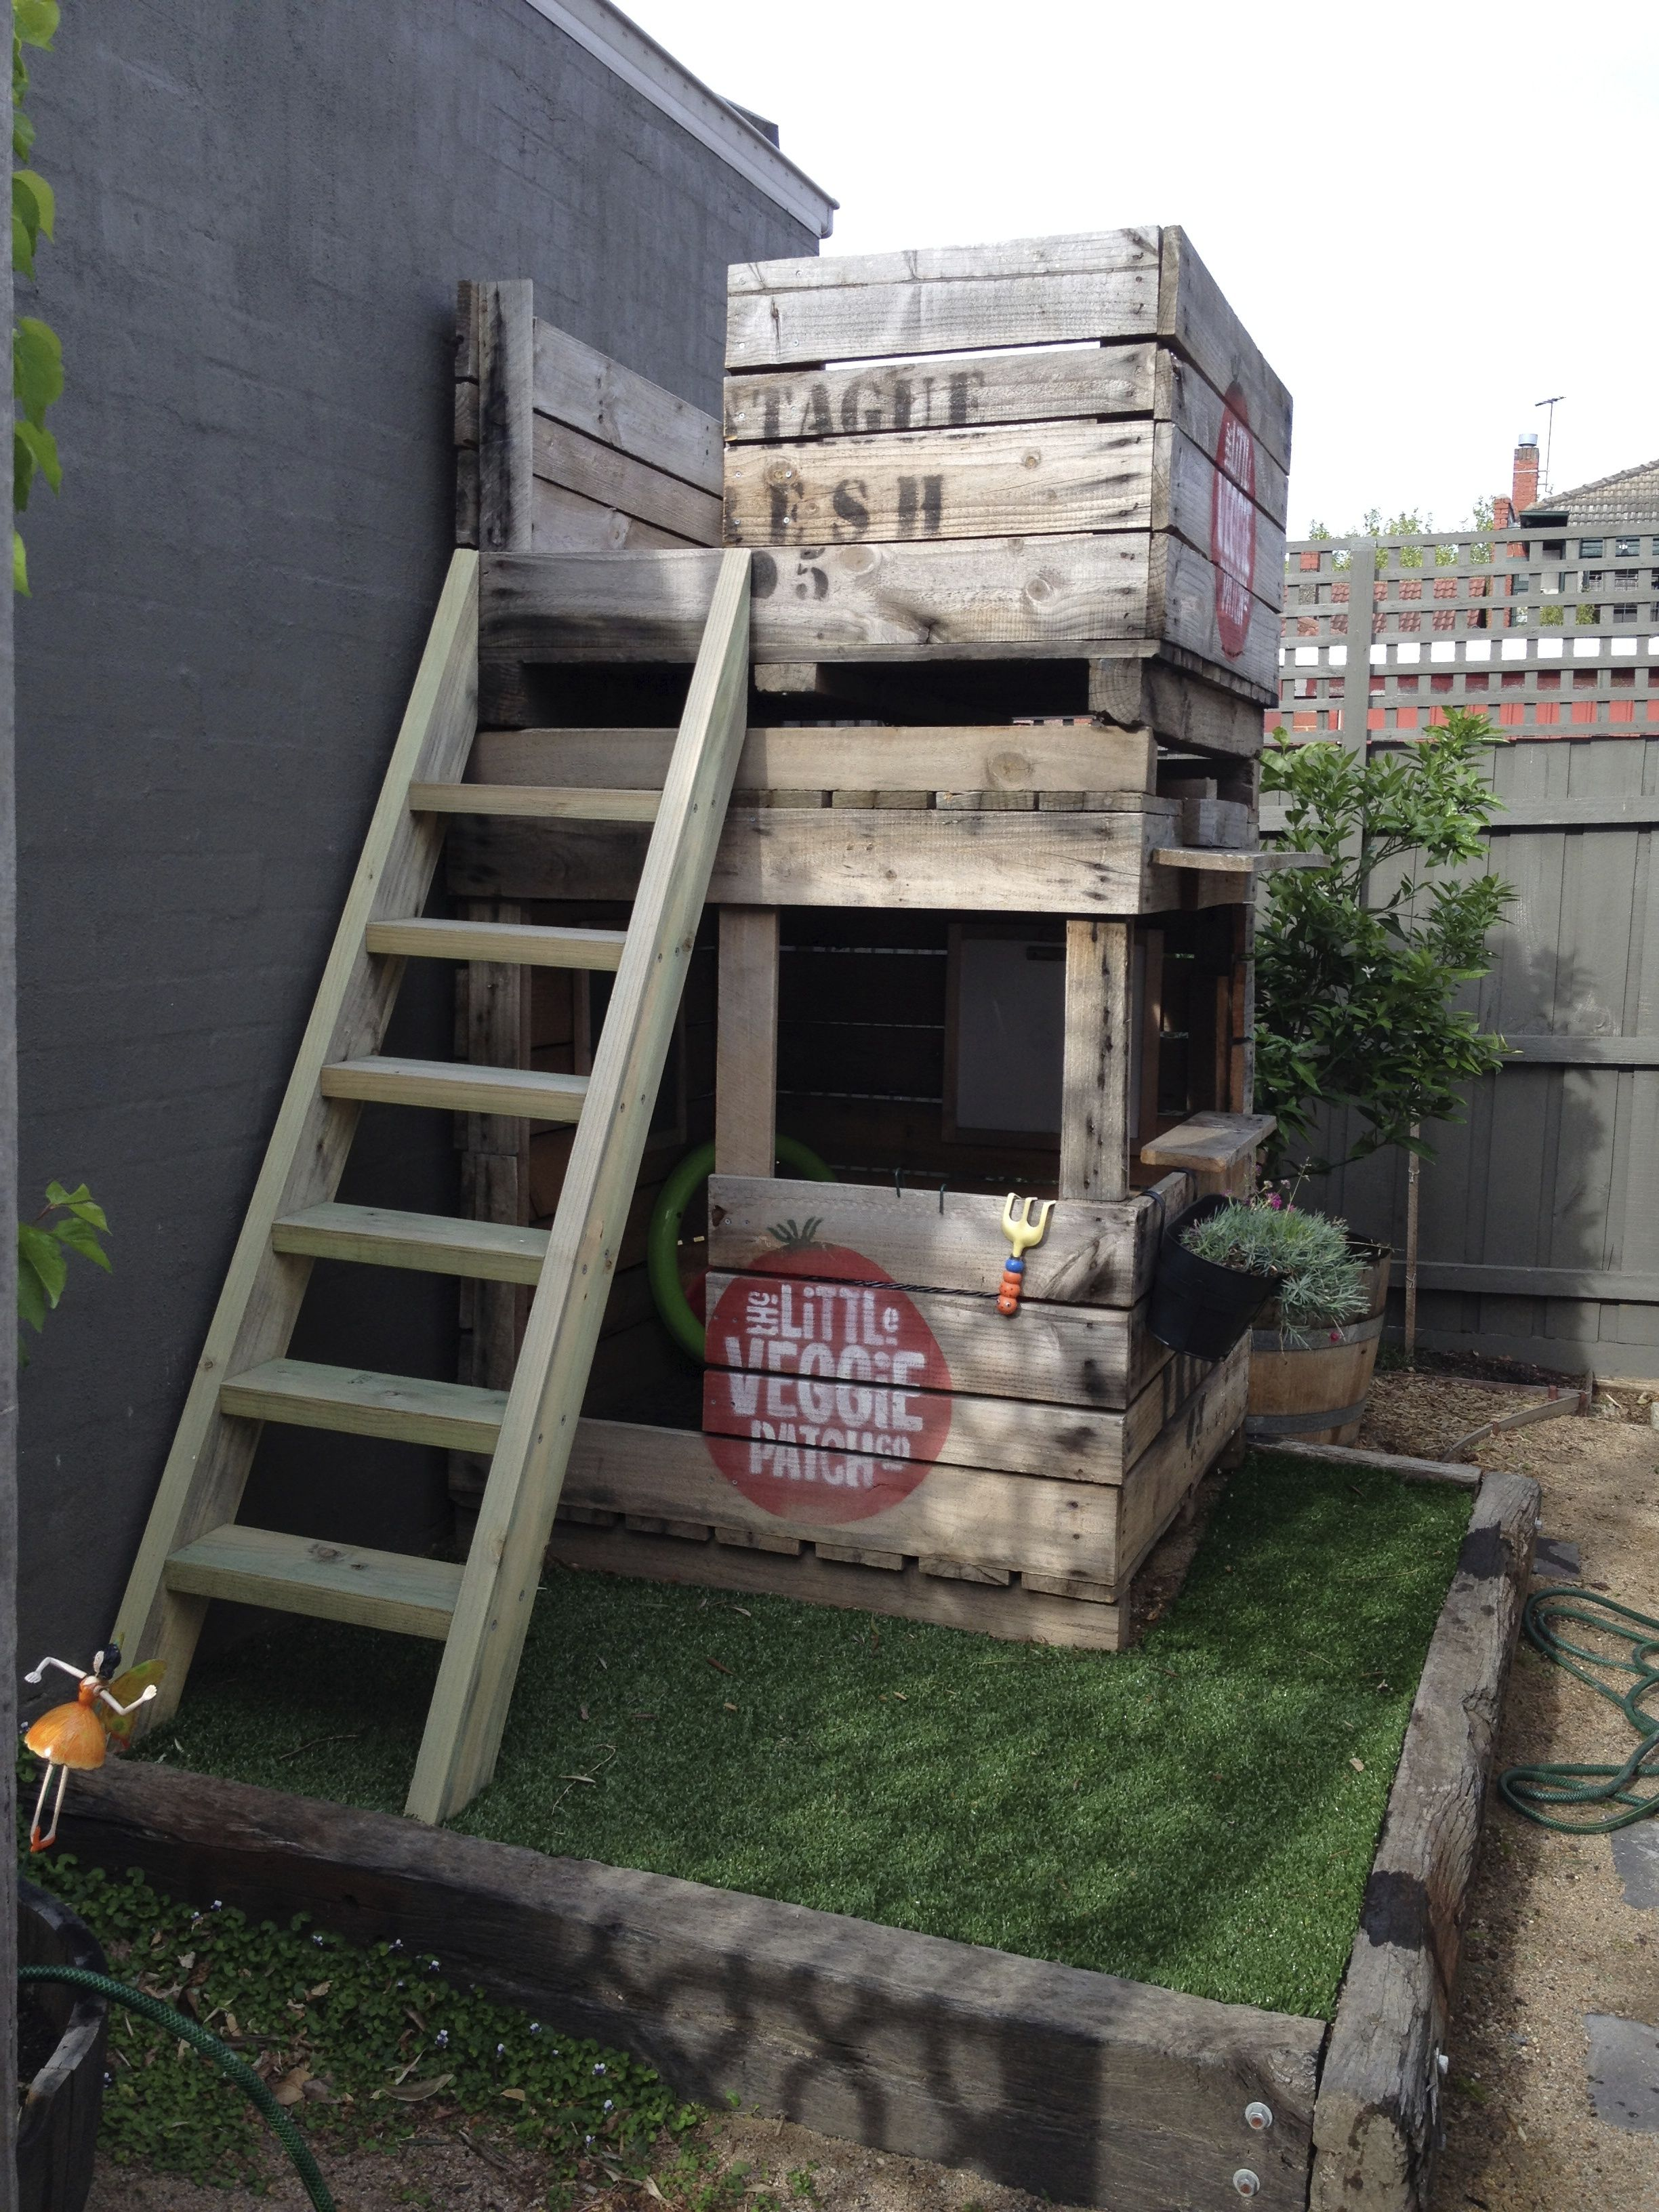 10 Amazingly Awesome Cubby Houses Part 2 Apple crates Cubby